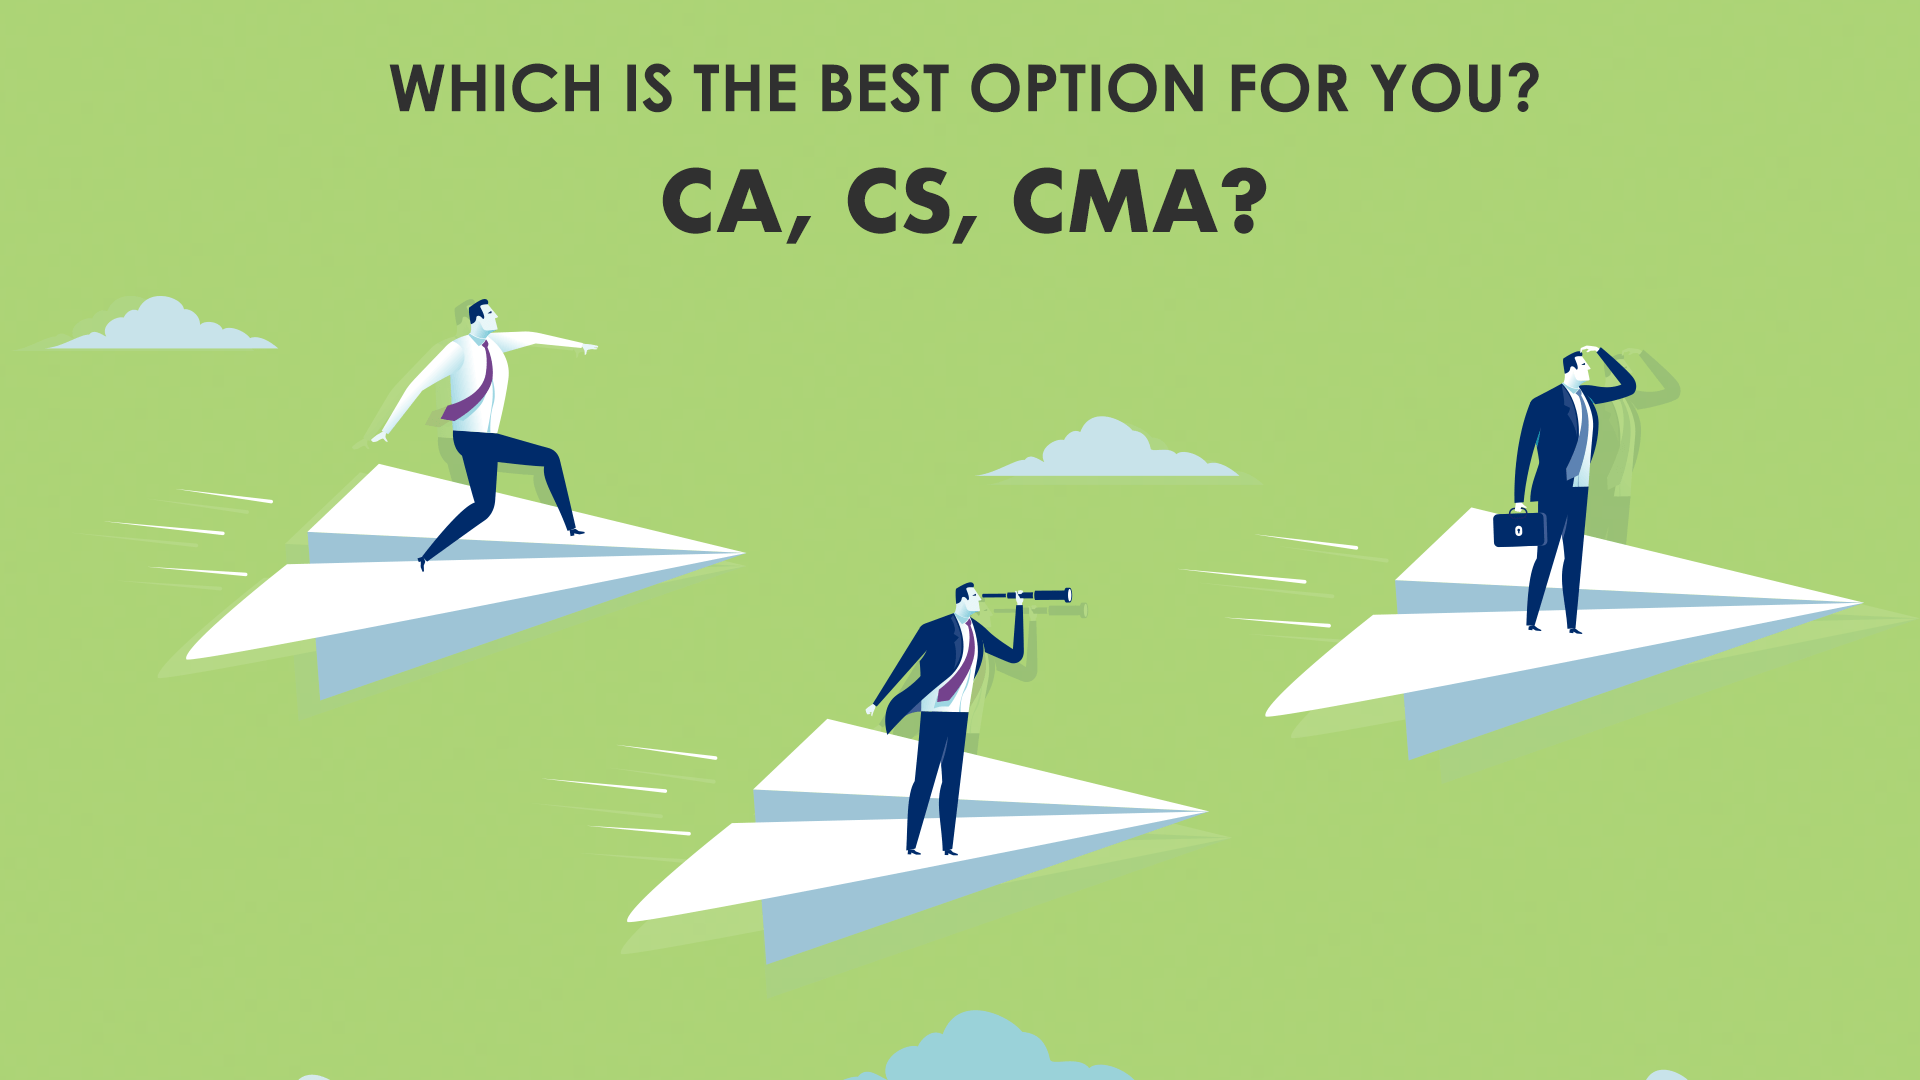 Which is the best option for you? CA, CS or CMA?